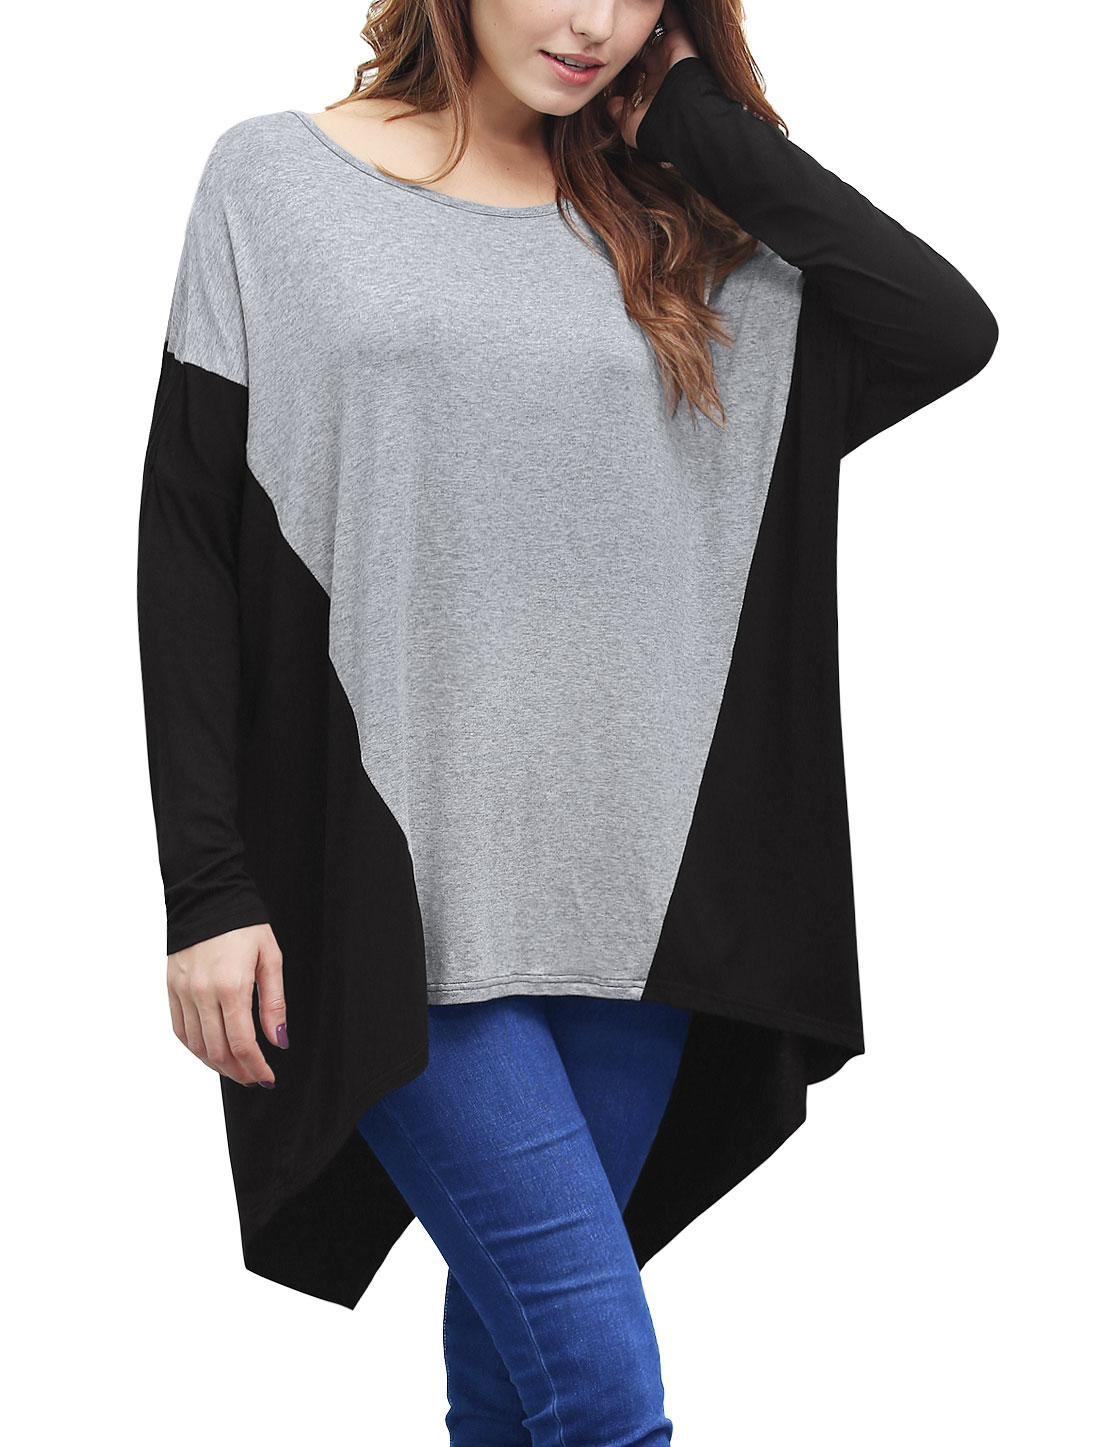 Women Batwing Sleeves Color Block Loose Tunic Top Gray S